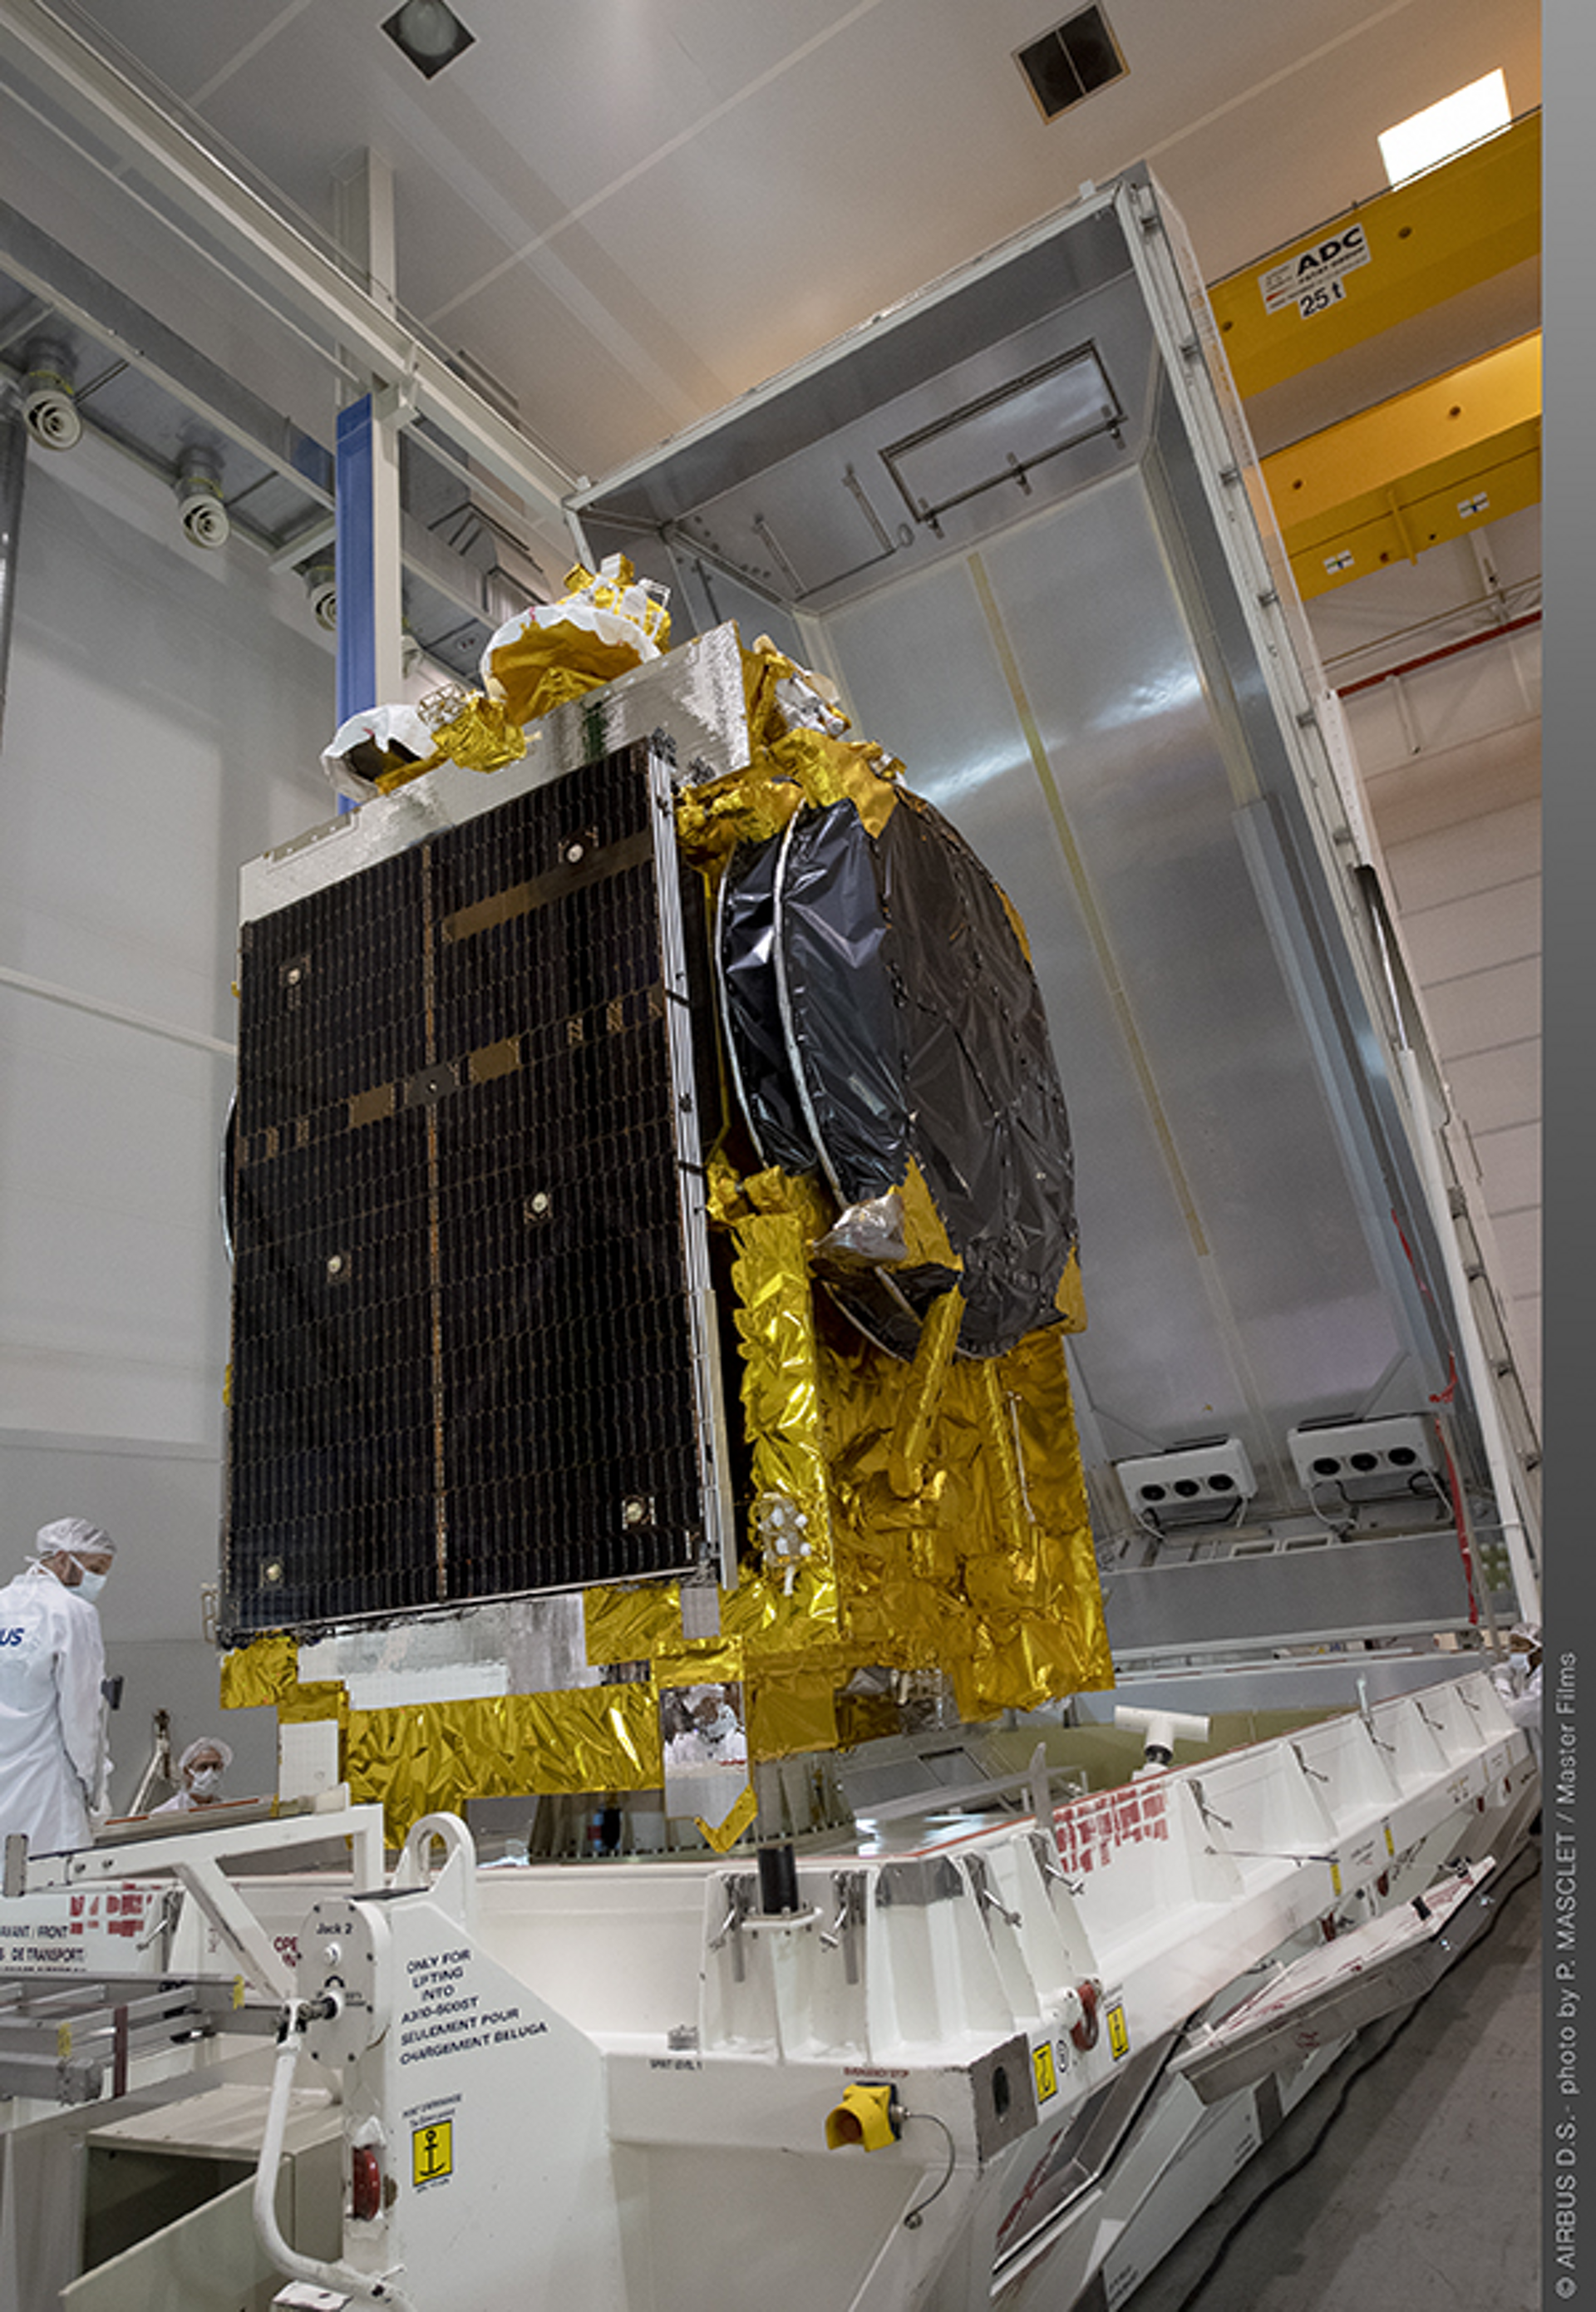 Airbus Defence and Space is co-prime contractor for the TIBA-1 communications spacecraft built for the Government of Egypt